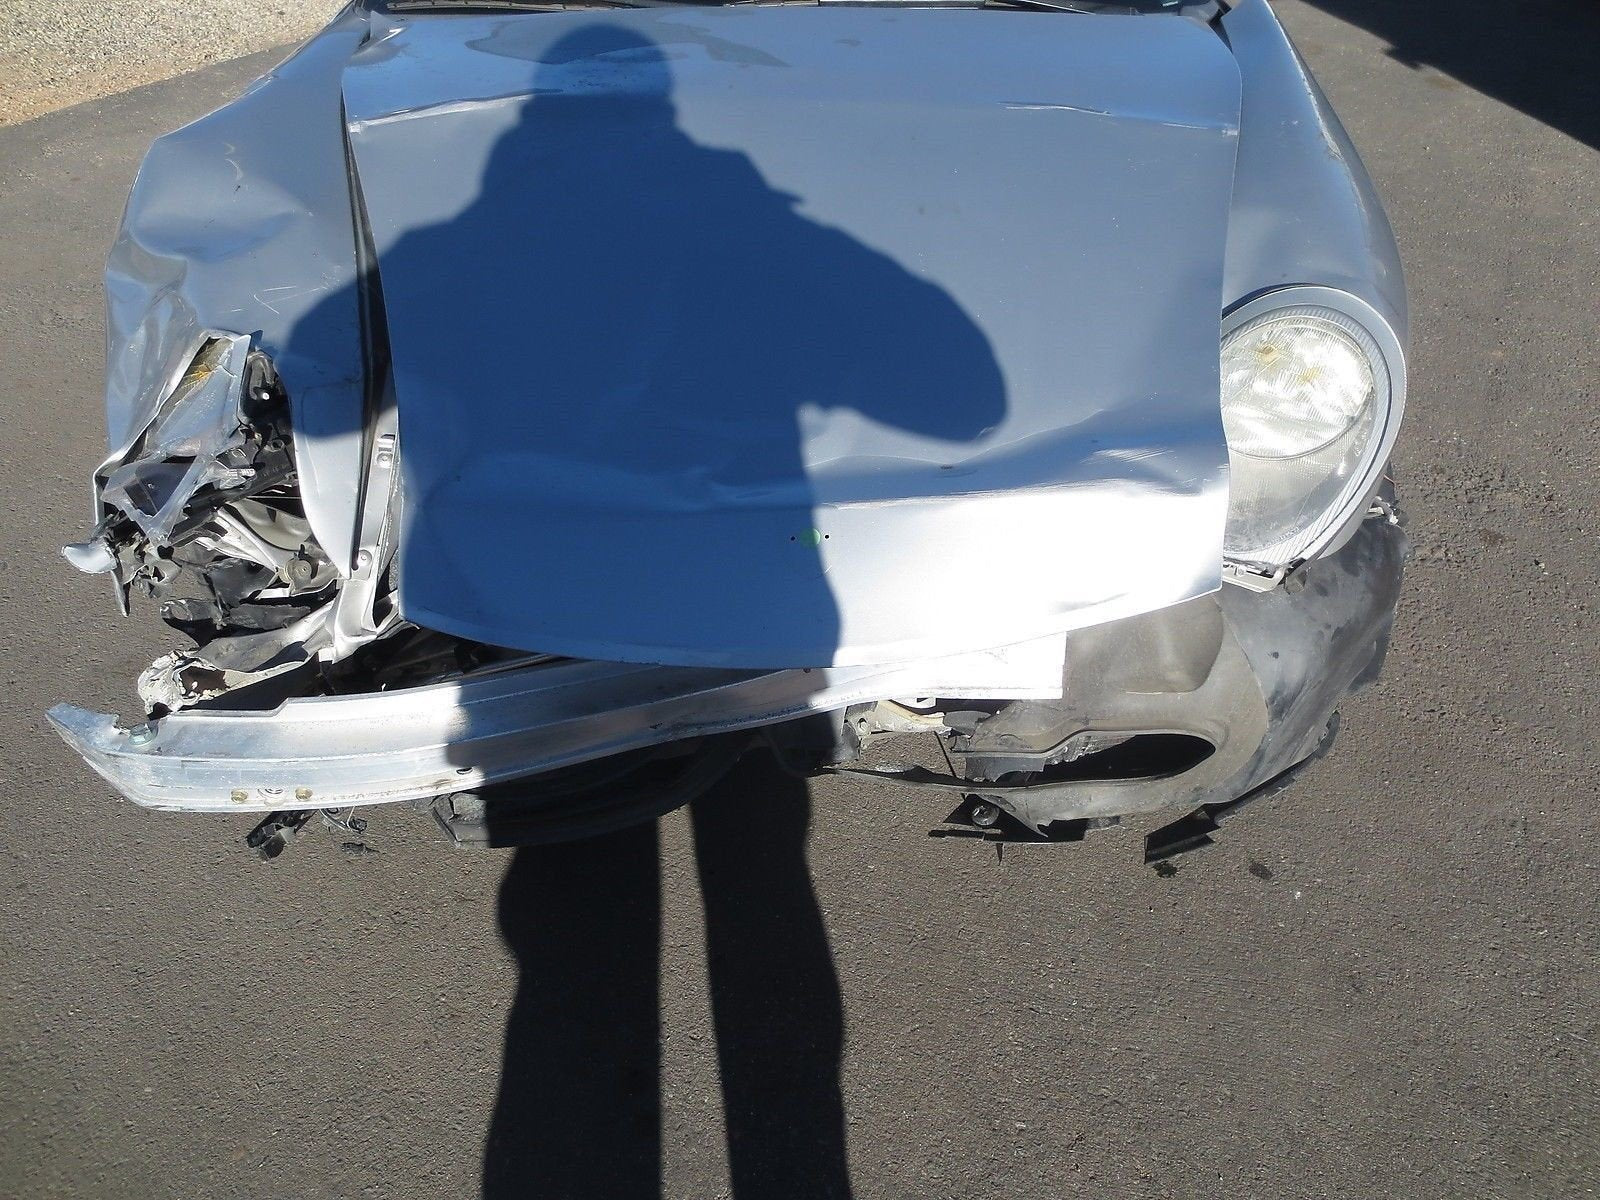 99 Porsche 911 Carrera Convertible 996 Parting Out car parts 154,807